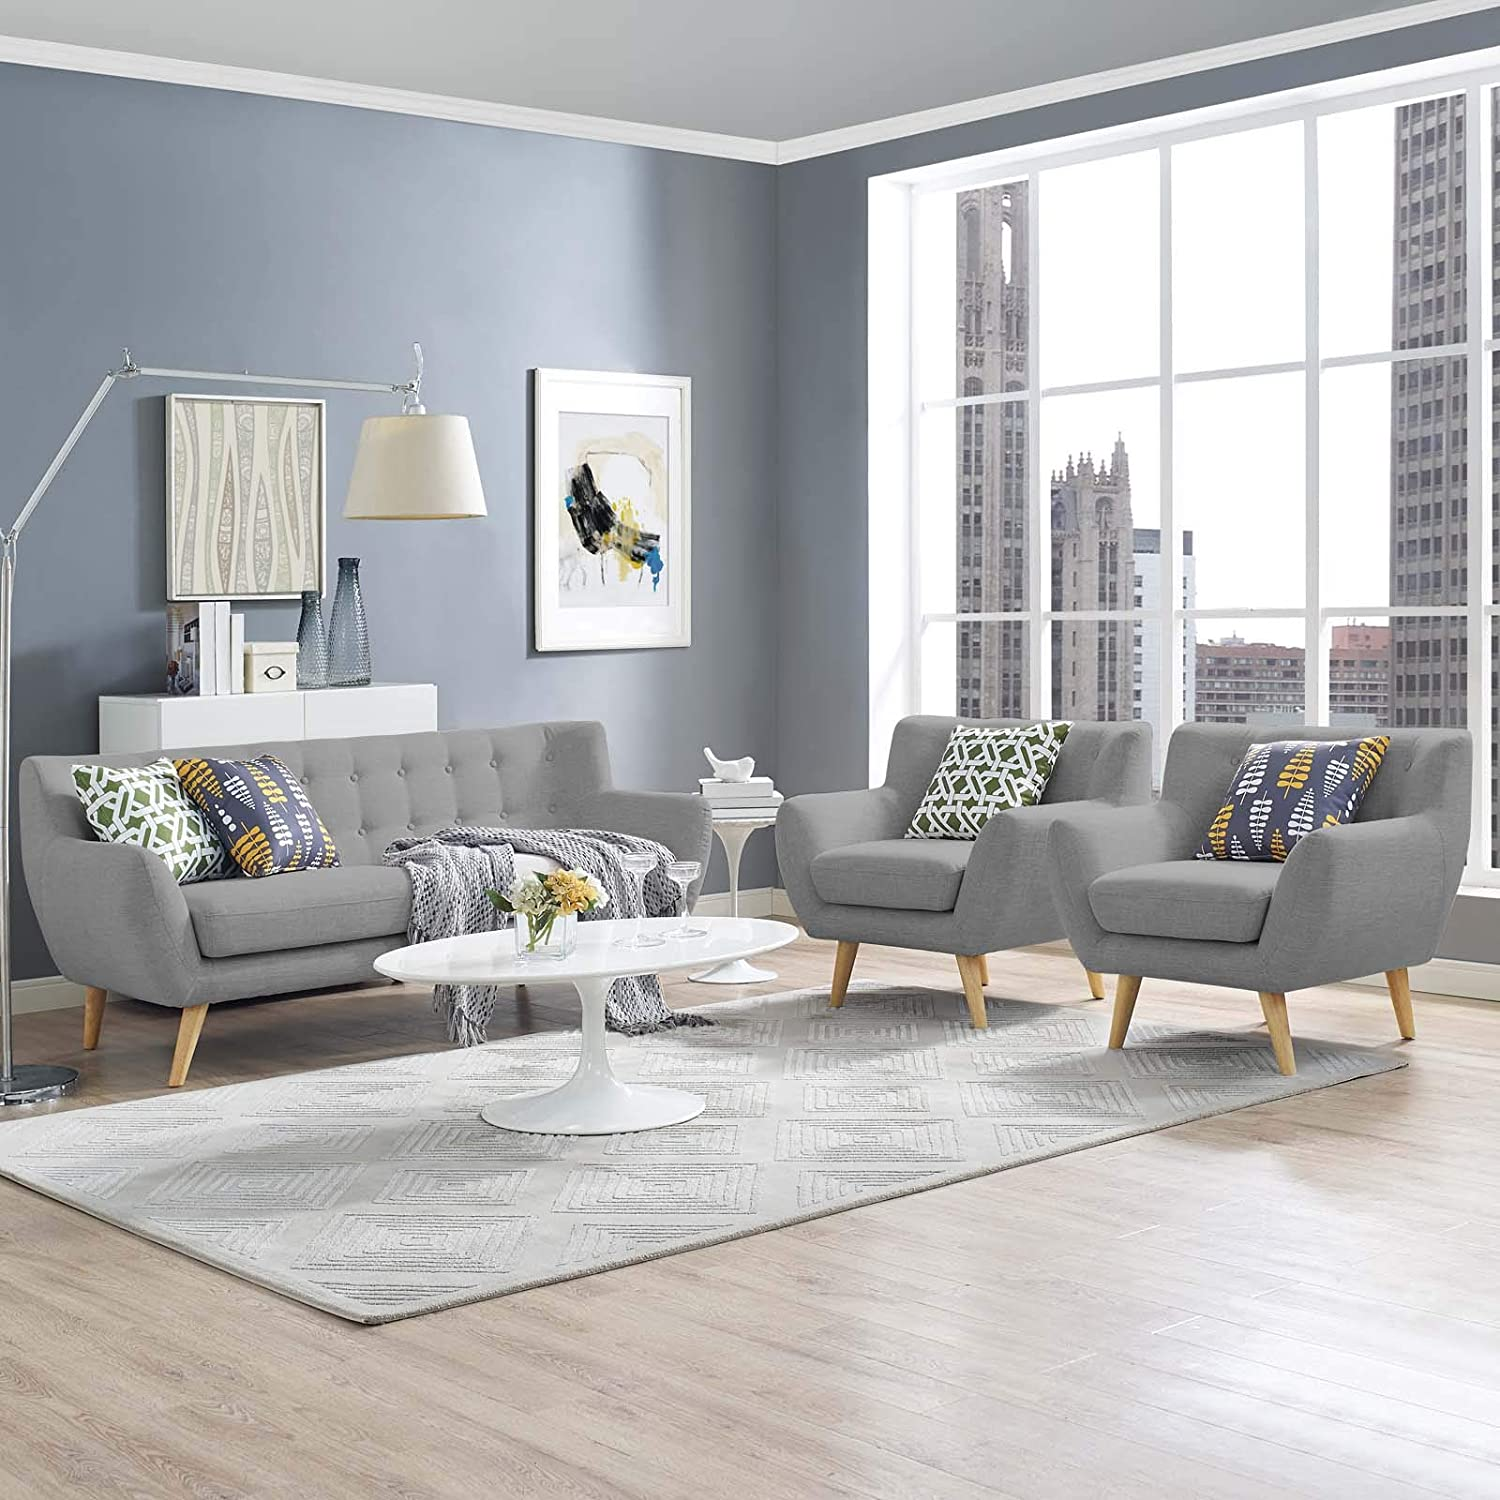 Miraculous Modway Remark Mid Century Modern Upholstered Fabric 3 Piece Sofa And Loveseat Living Room Set In Light Gray Ibusinesslaw Wood Chair Design Ideas Ibusinesslaworg